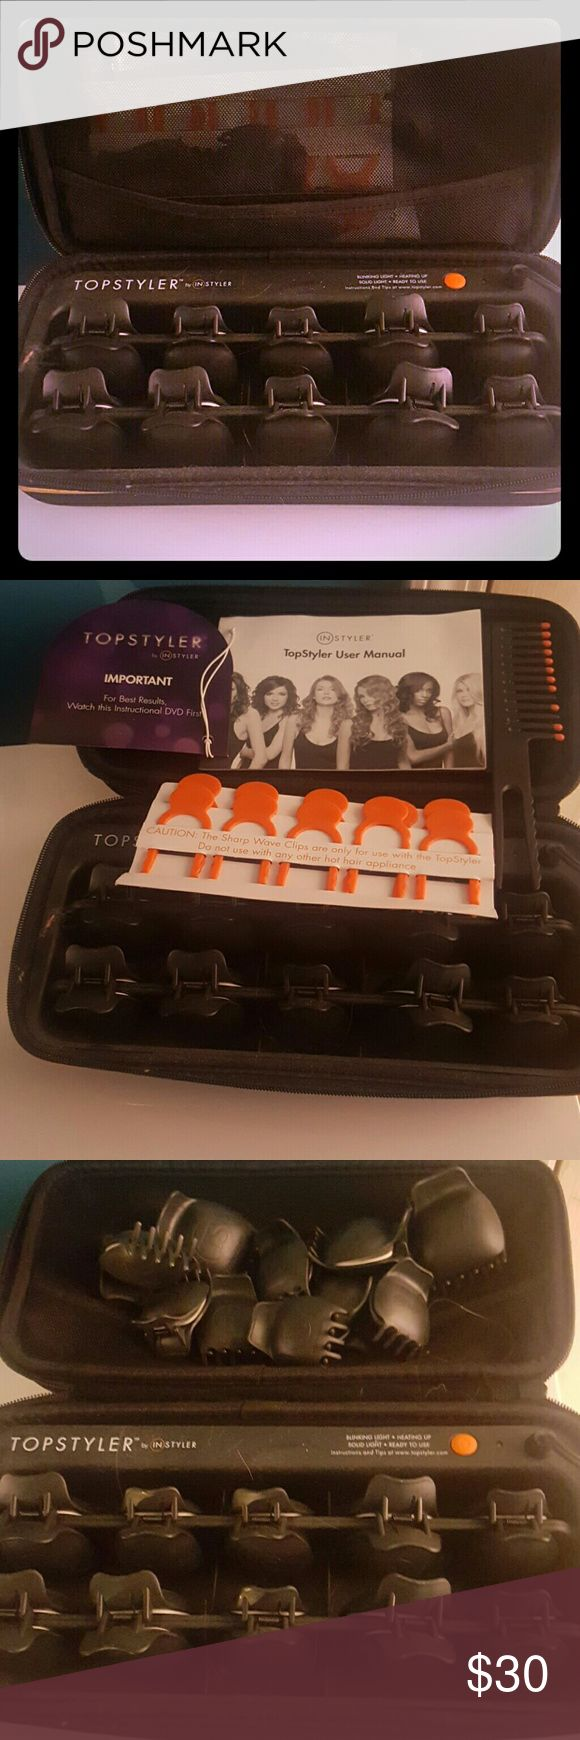 Topstyler Hot rollers Instyler's first hot roller set. Comes with instruction manual/DVD. 10 extra rollers, 10 sharp wave clips, and 1 EZ wrap styling comb for tight curls! Instyler Makeup